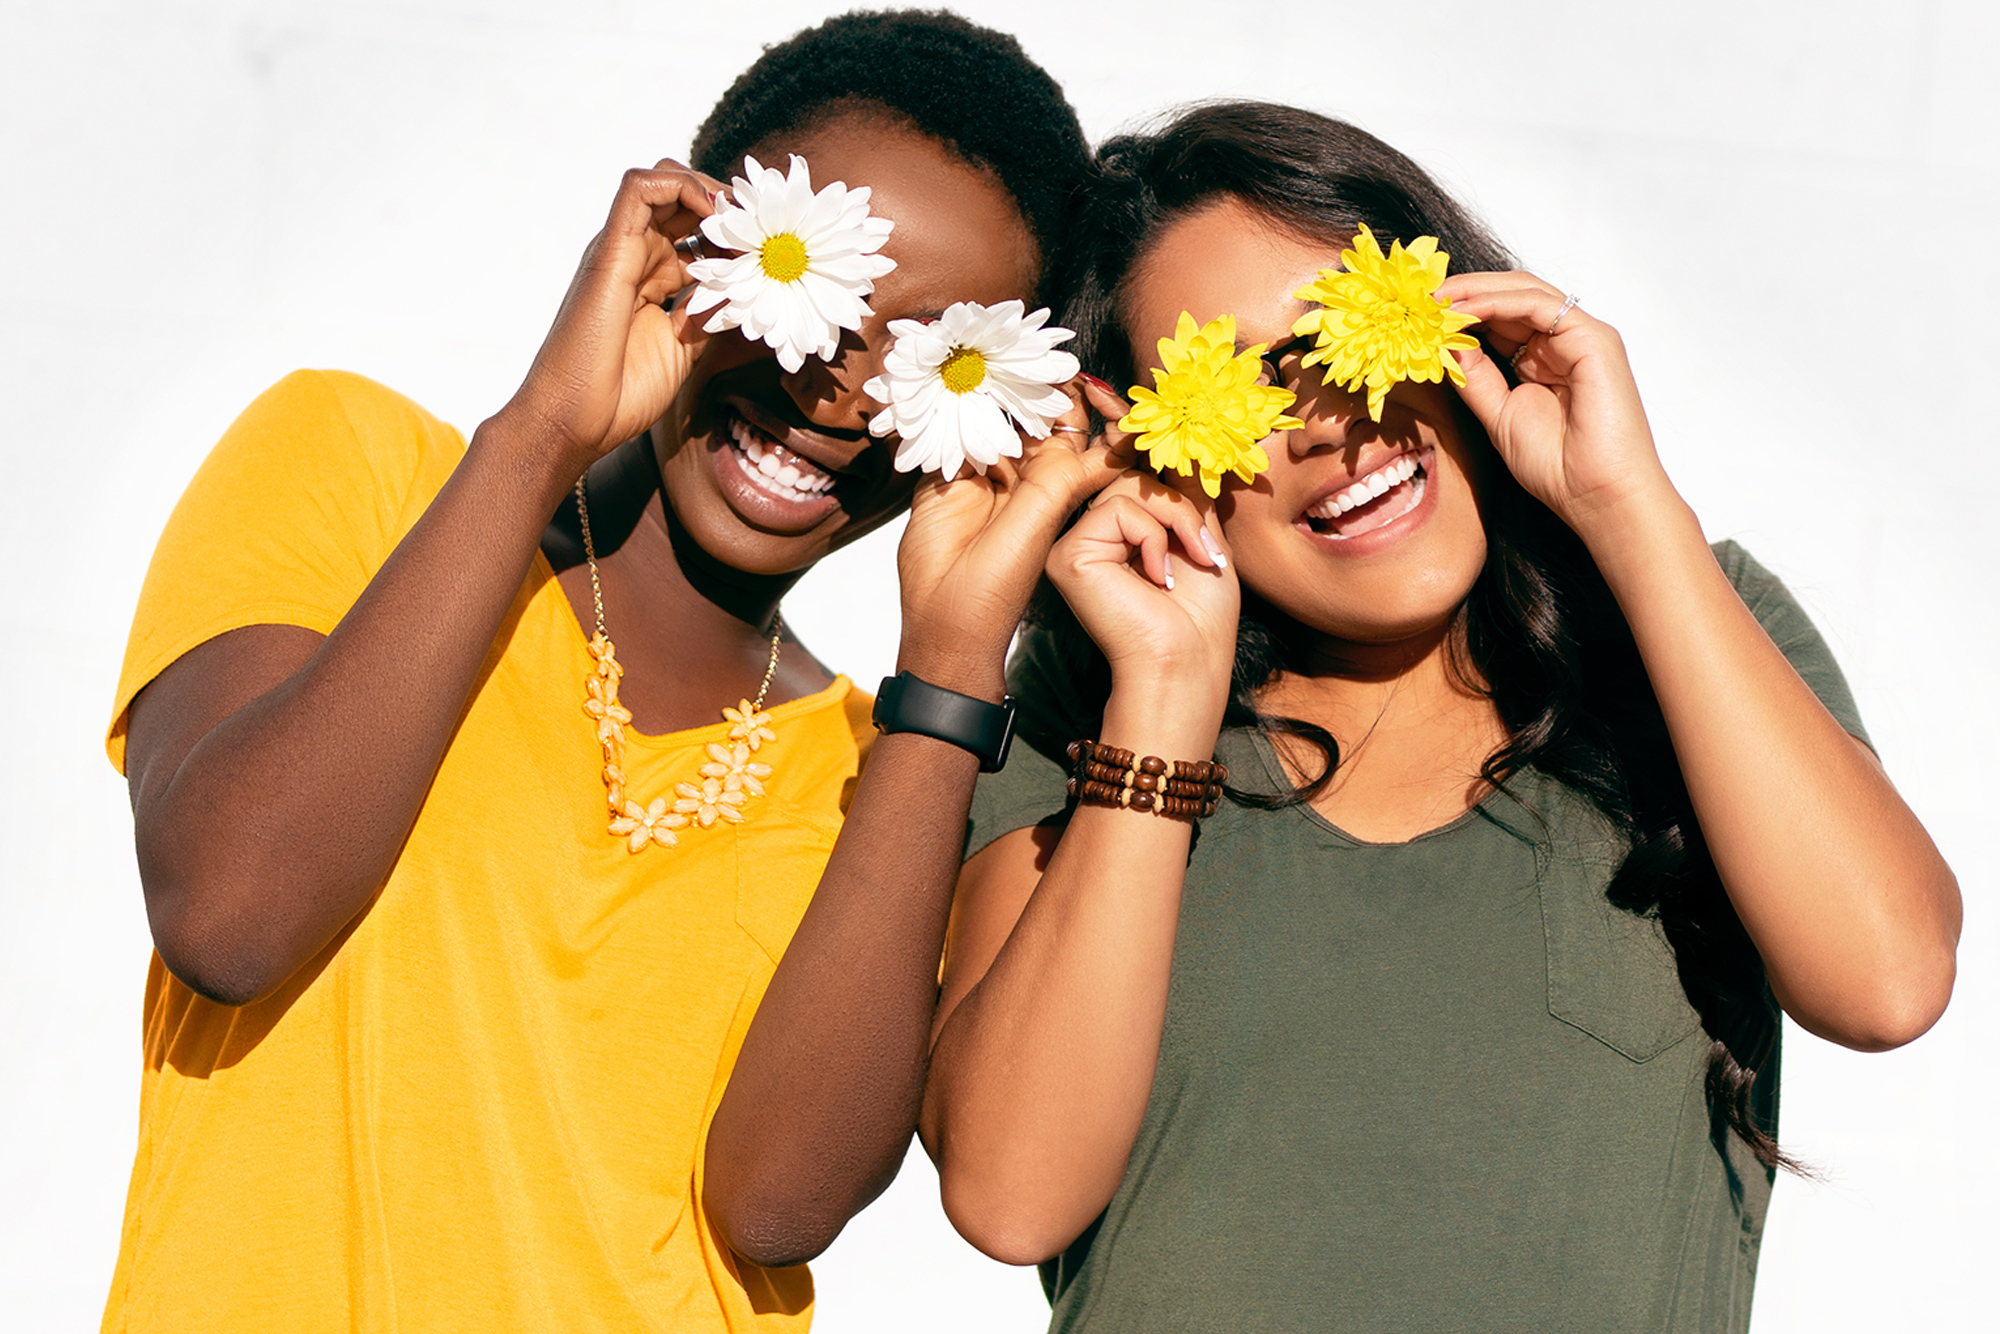 Girls holding flowers in front of their eyes while laughing